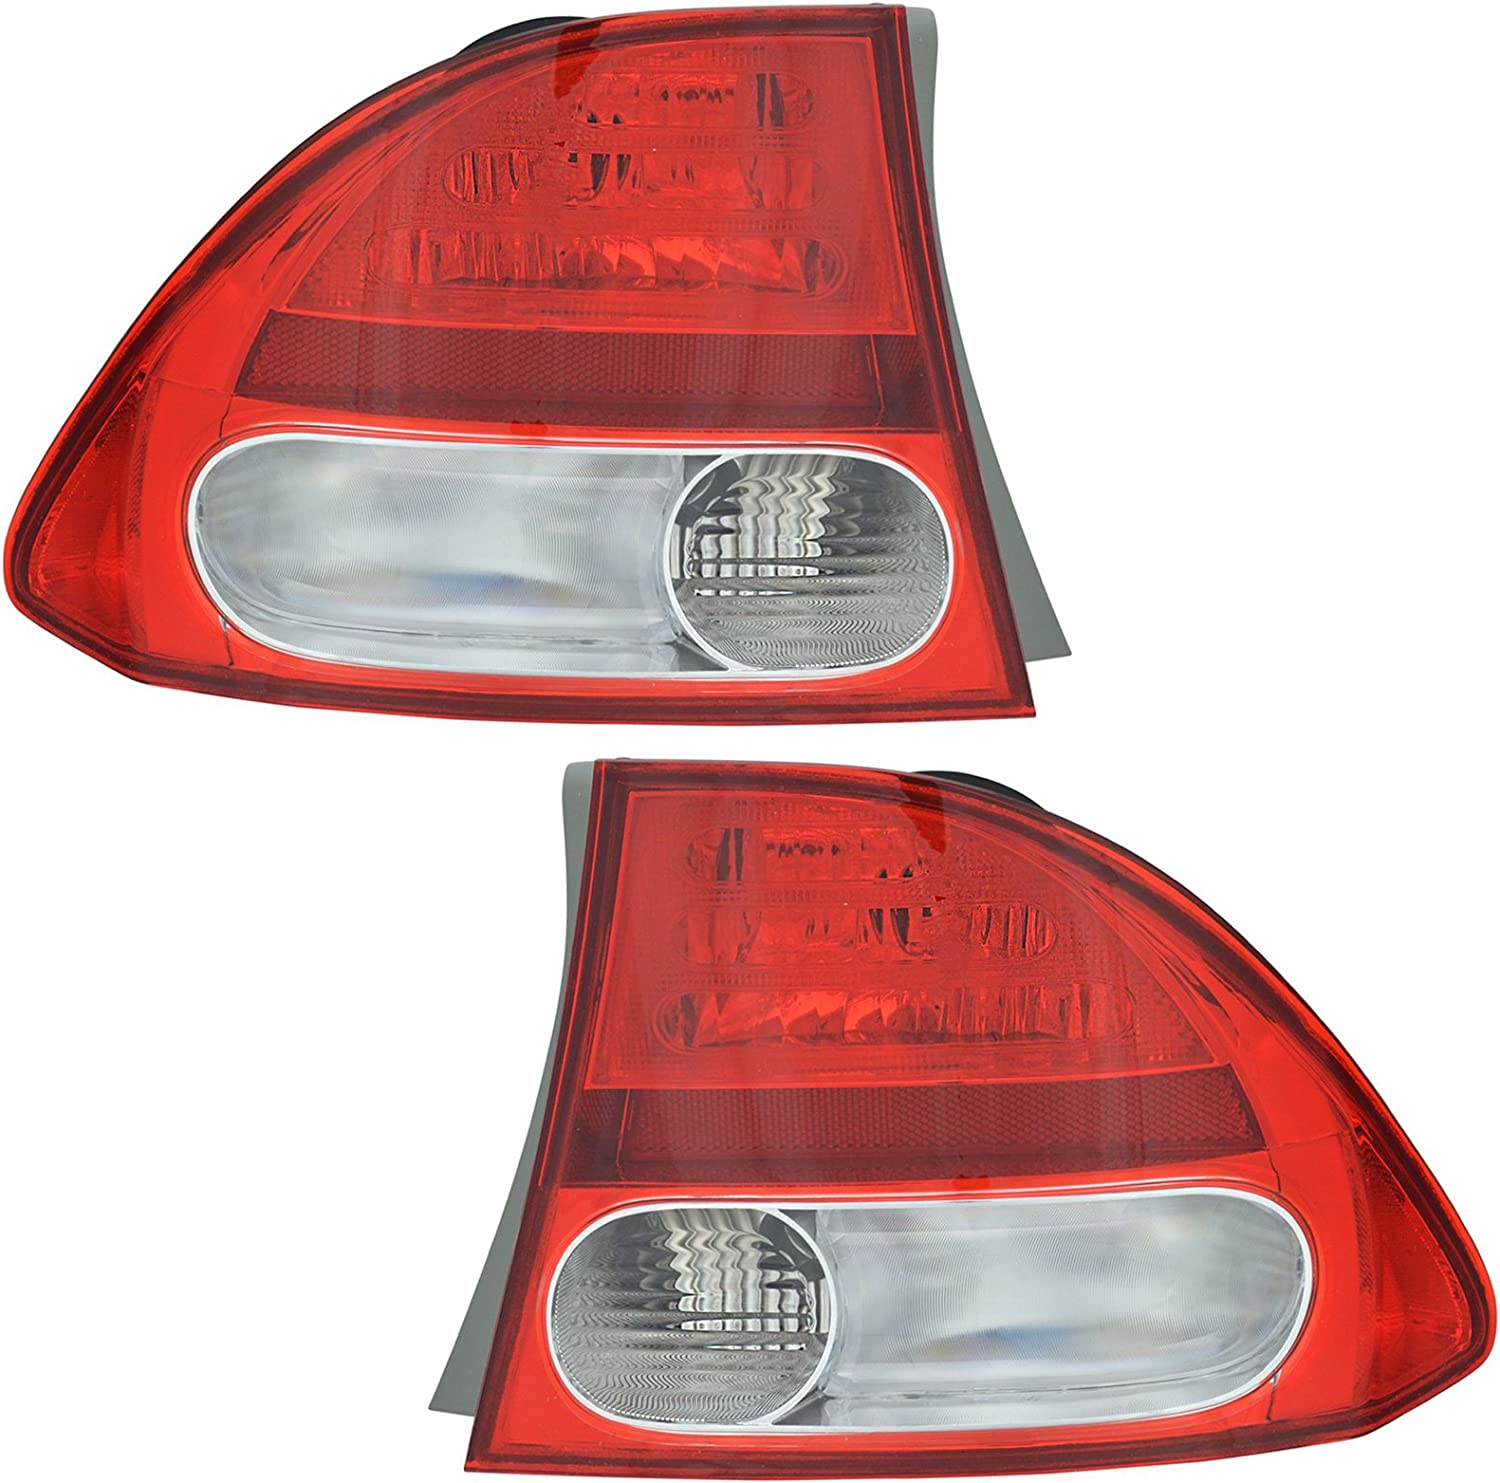 Rear Brake Light Taillight Tail Popular overseas Lamp We OFFer at cheap prices Pair Hon 2 09-11 for Set of